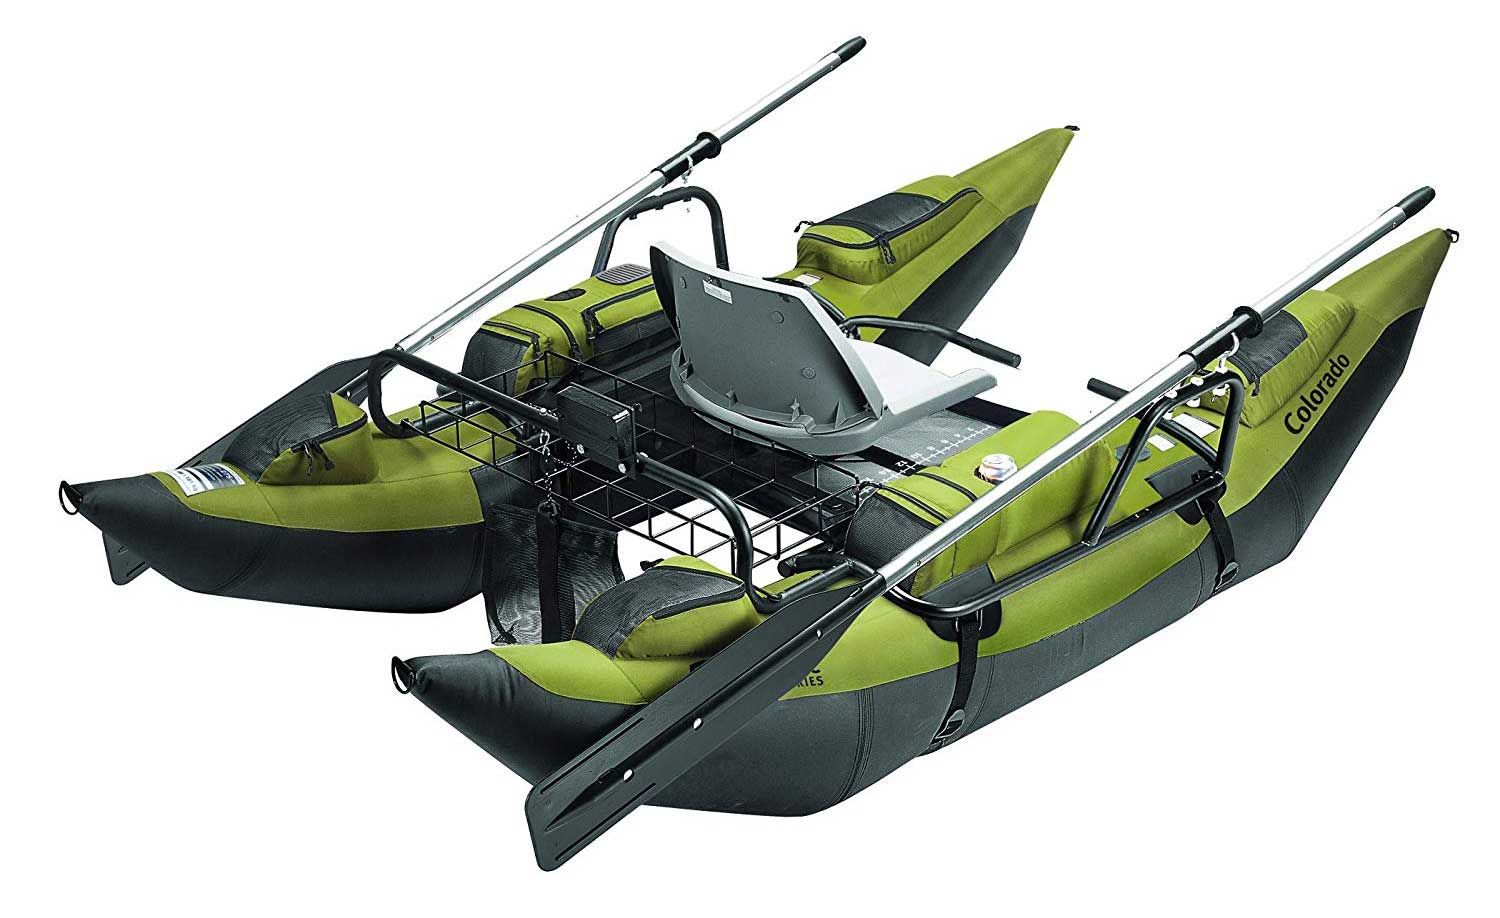 Top 5 Best Inflatable Fishing Boats Reviews For 2020 Pontoon Boat Inflatable Pontoon Boats Boat Accessories